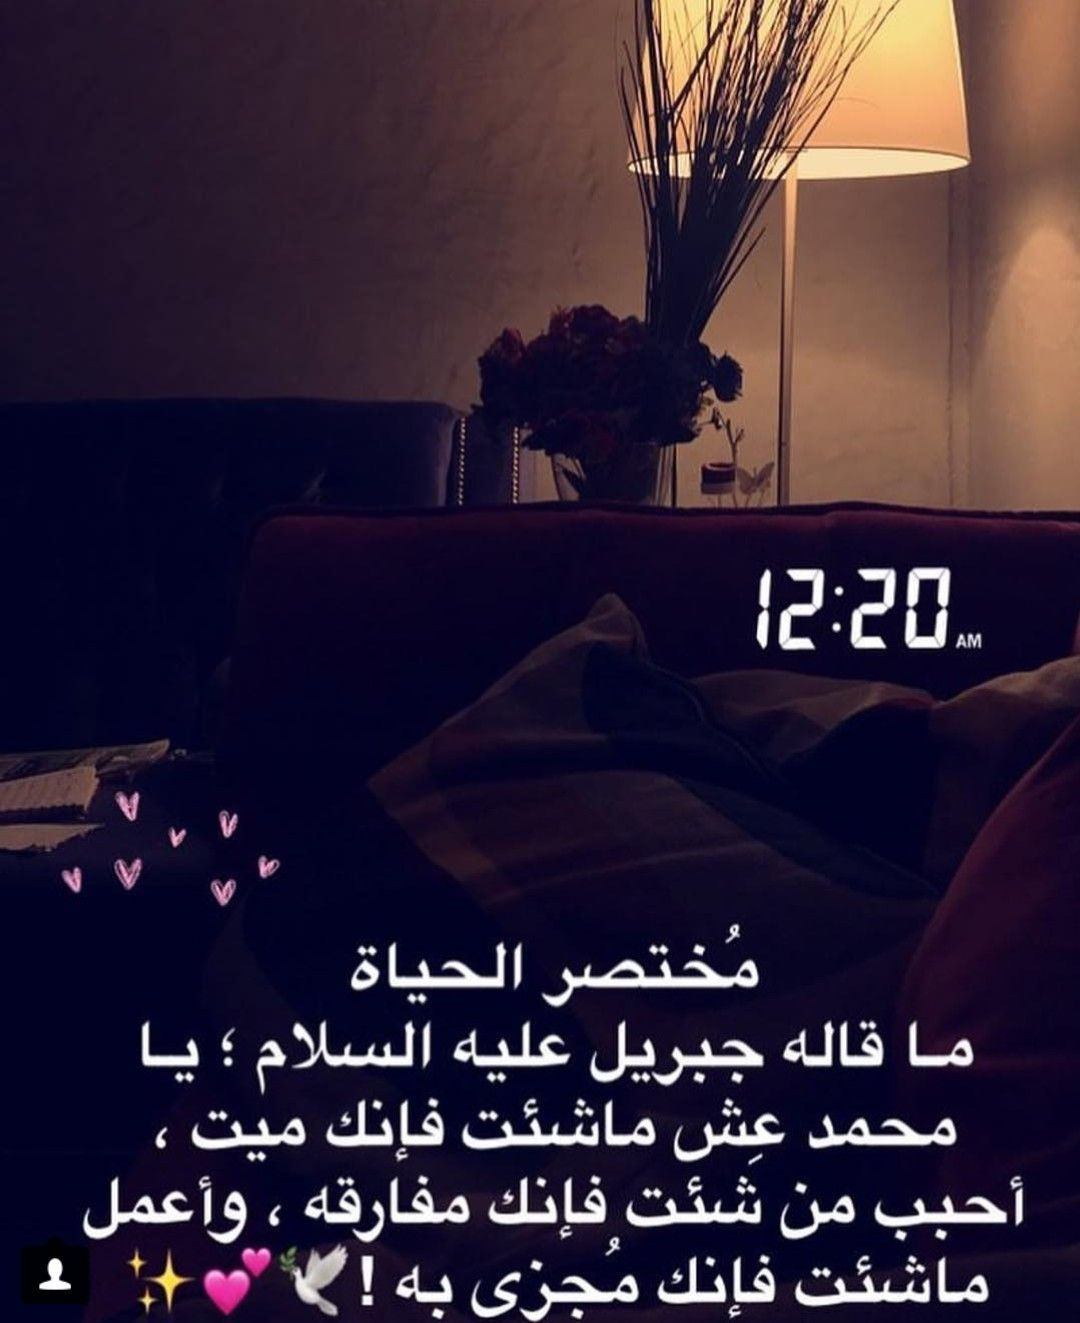 Pin By صمتي حكايہ On سنابات Image Quotes Quotes Arabic Love Quotes